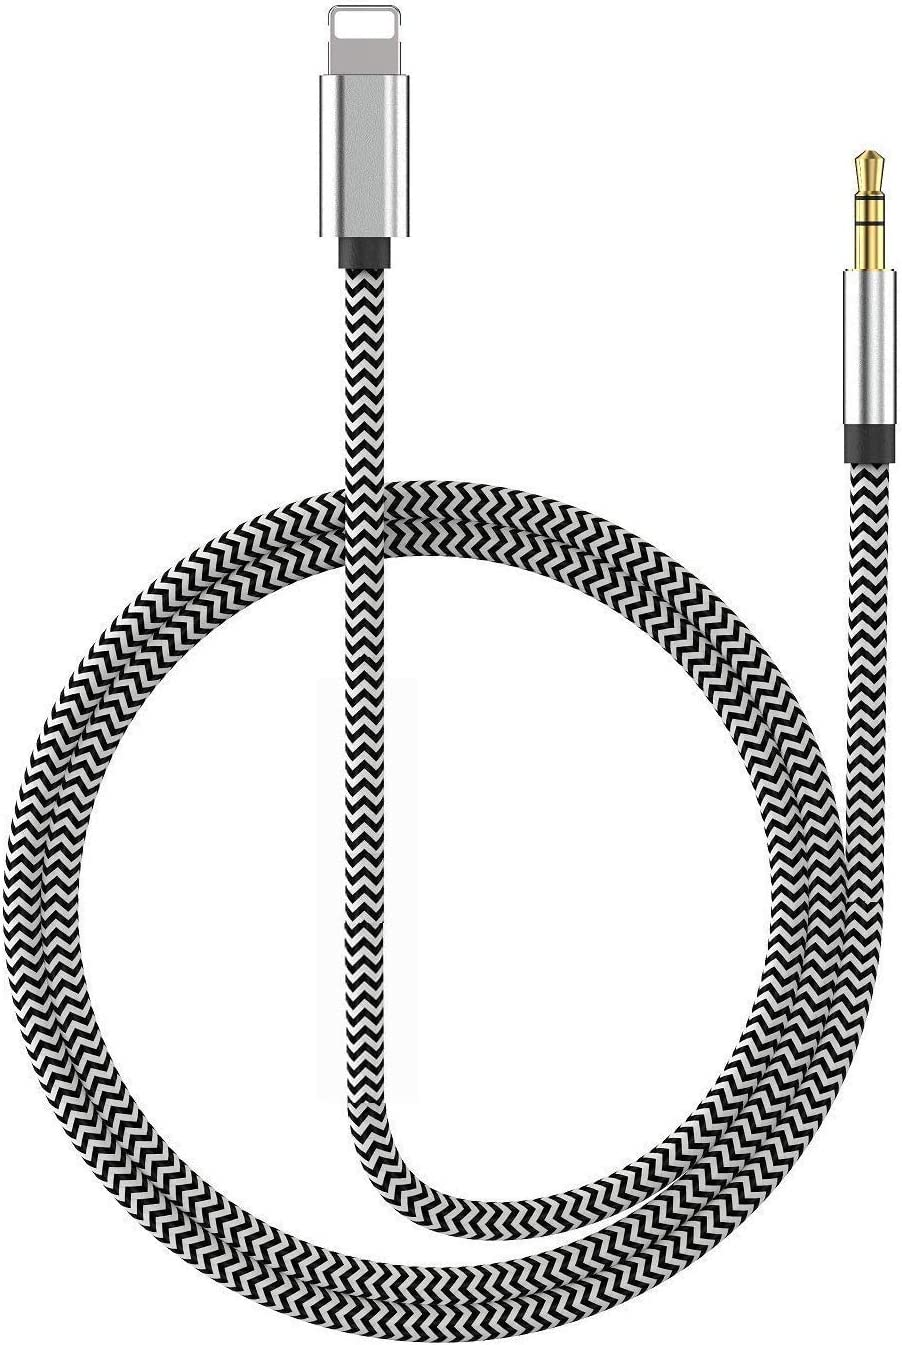 Nylon Aux Cable Compatible with iPhone11// iPhone XR//XS//XS Max//X//8//8Plus//7//7 Plus Lightning to 3.5mm Male Aux Cable,aux Cord for iPhone for car Support iOS 13 Apple MFi Certified